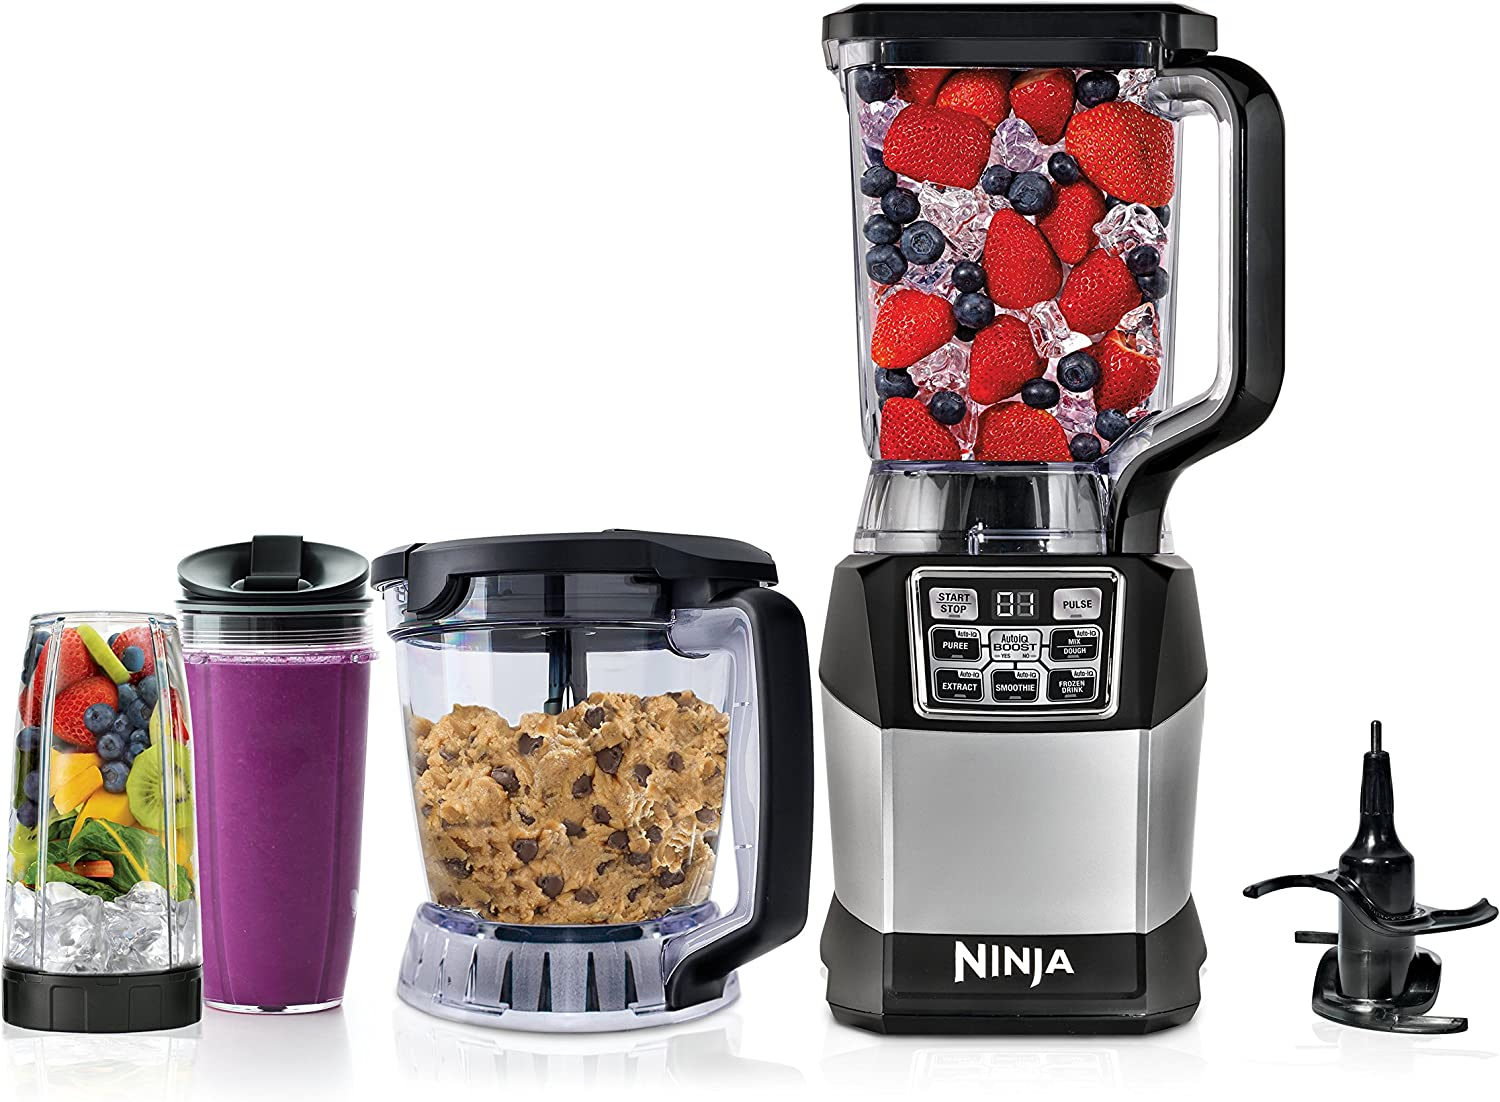 Ninja Blender and Food Processor System with 1200-Watt Auto-iQ Base, 72oz Pitcher, 40oz Blend & Prep Bowl, Dough Tool and (2) 24oz Cups with Lids (BL494),Black